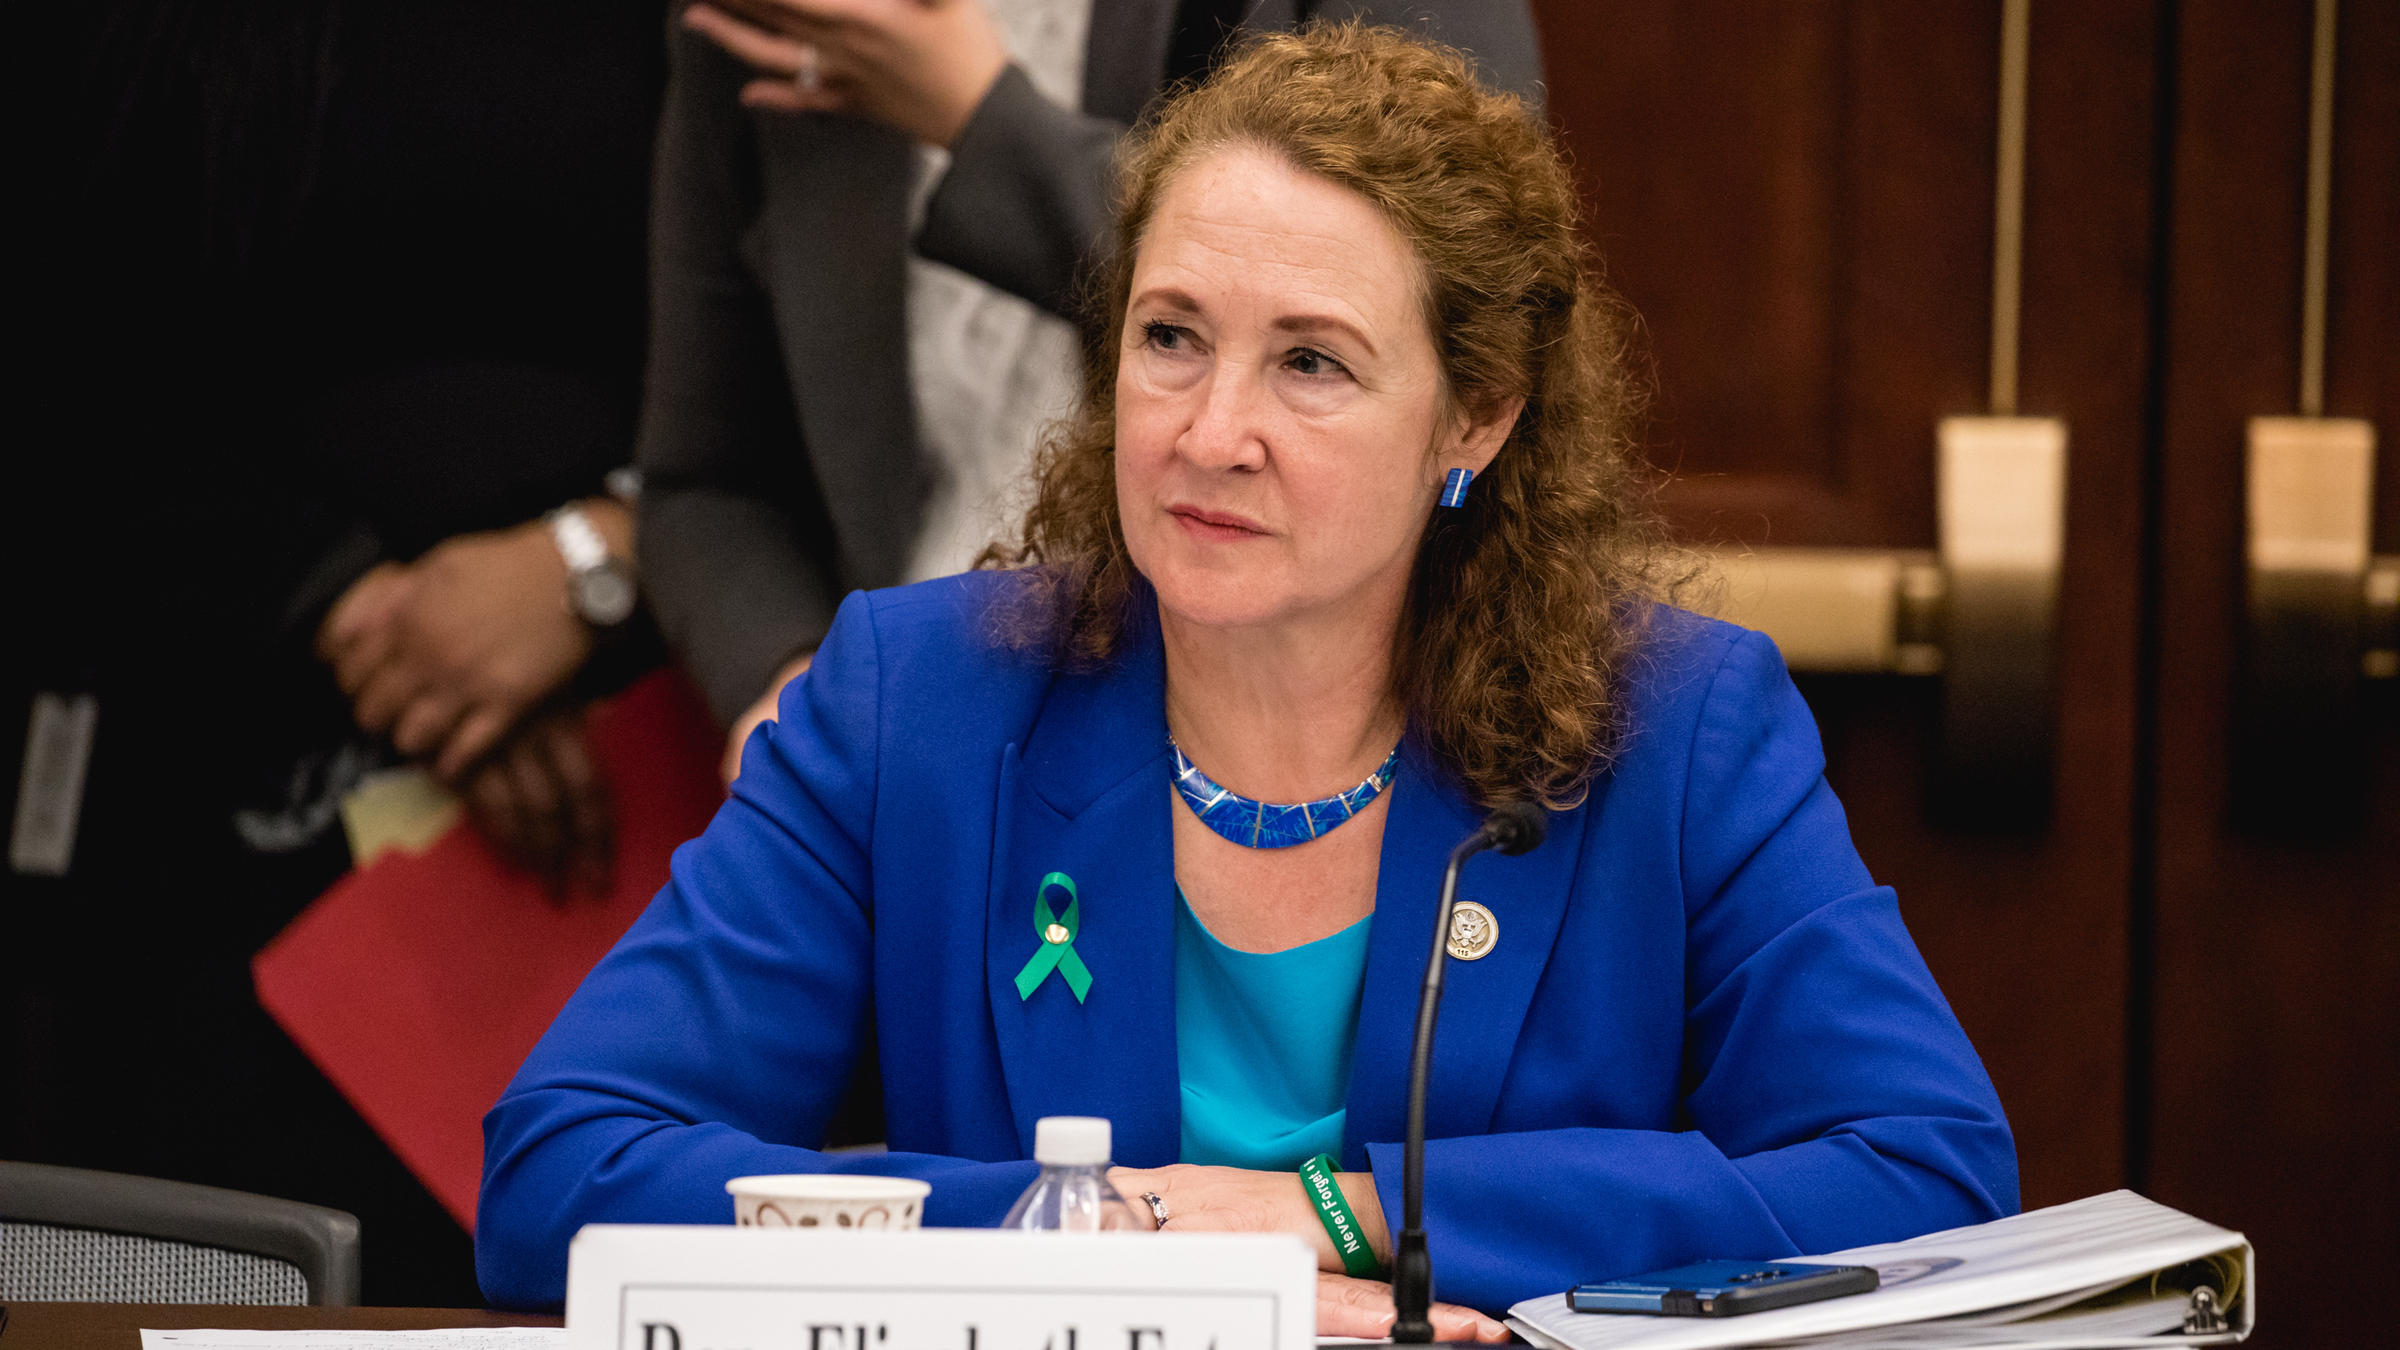 Republicans call on Rep. Esty to resign from Congress